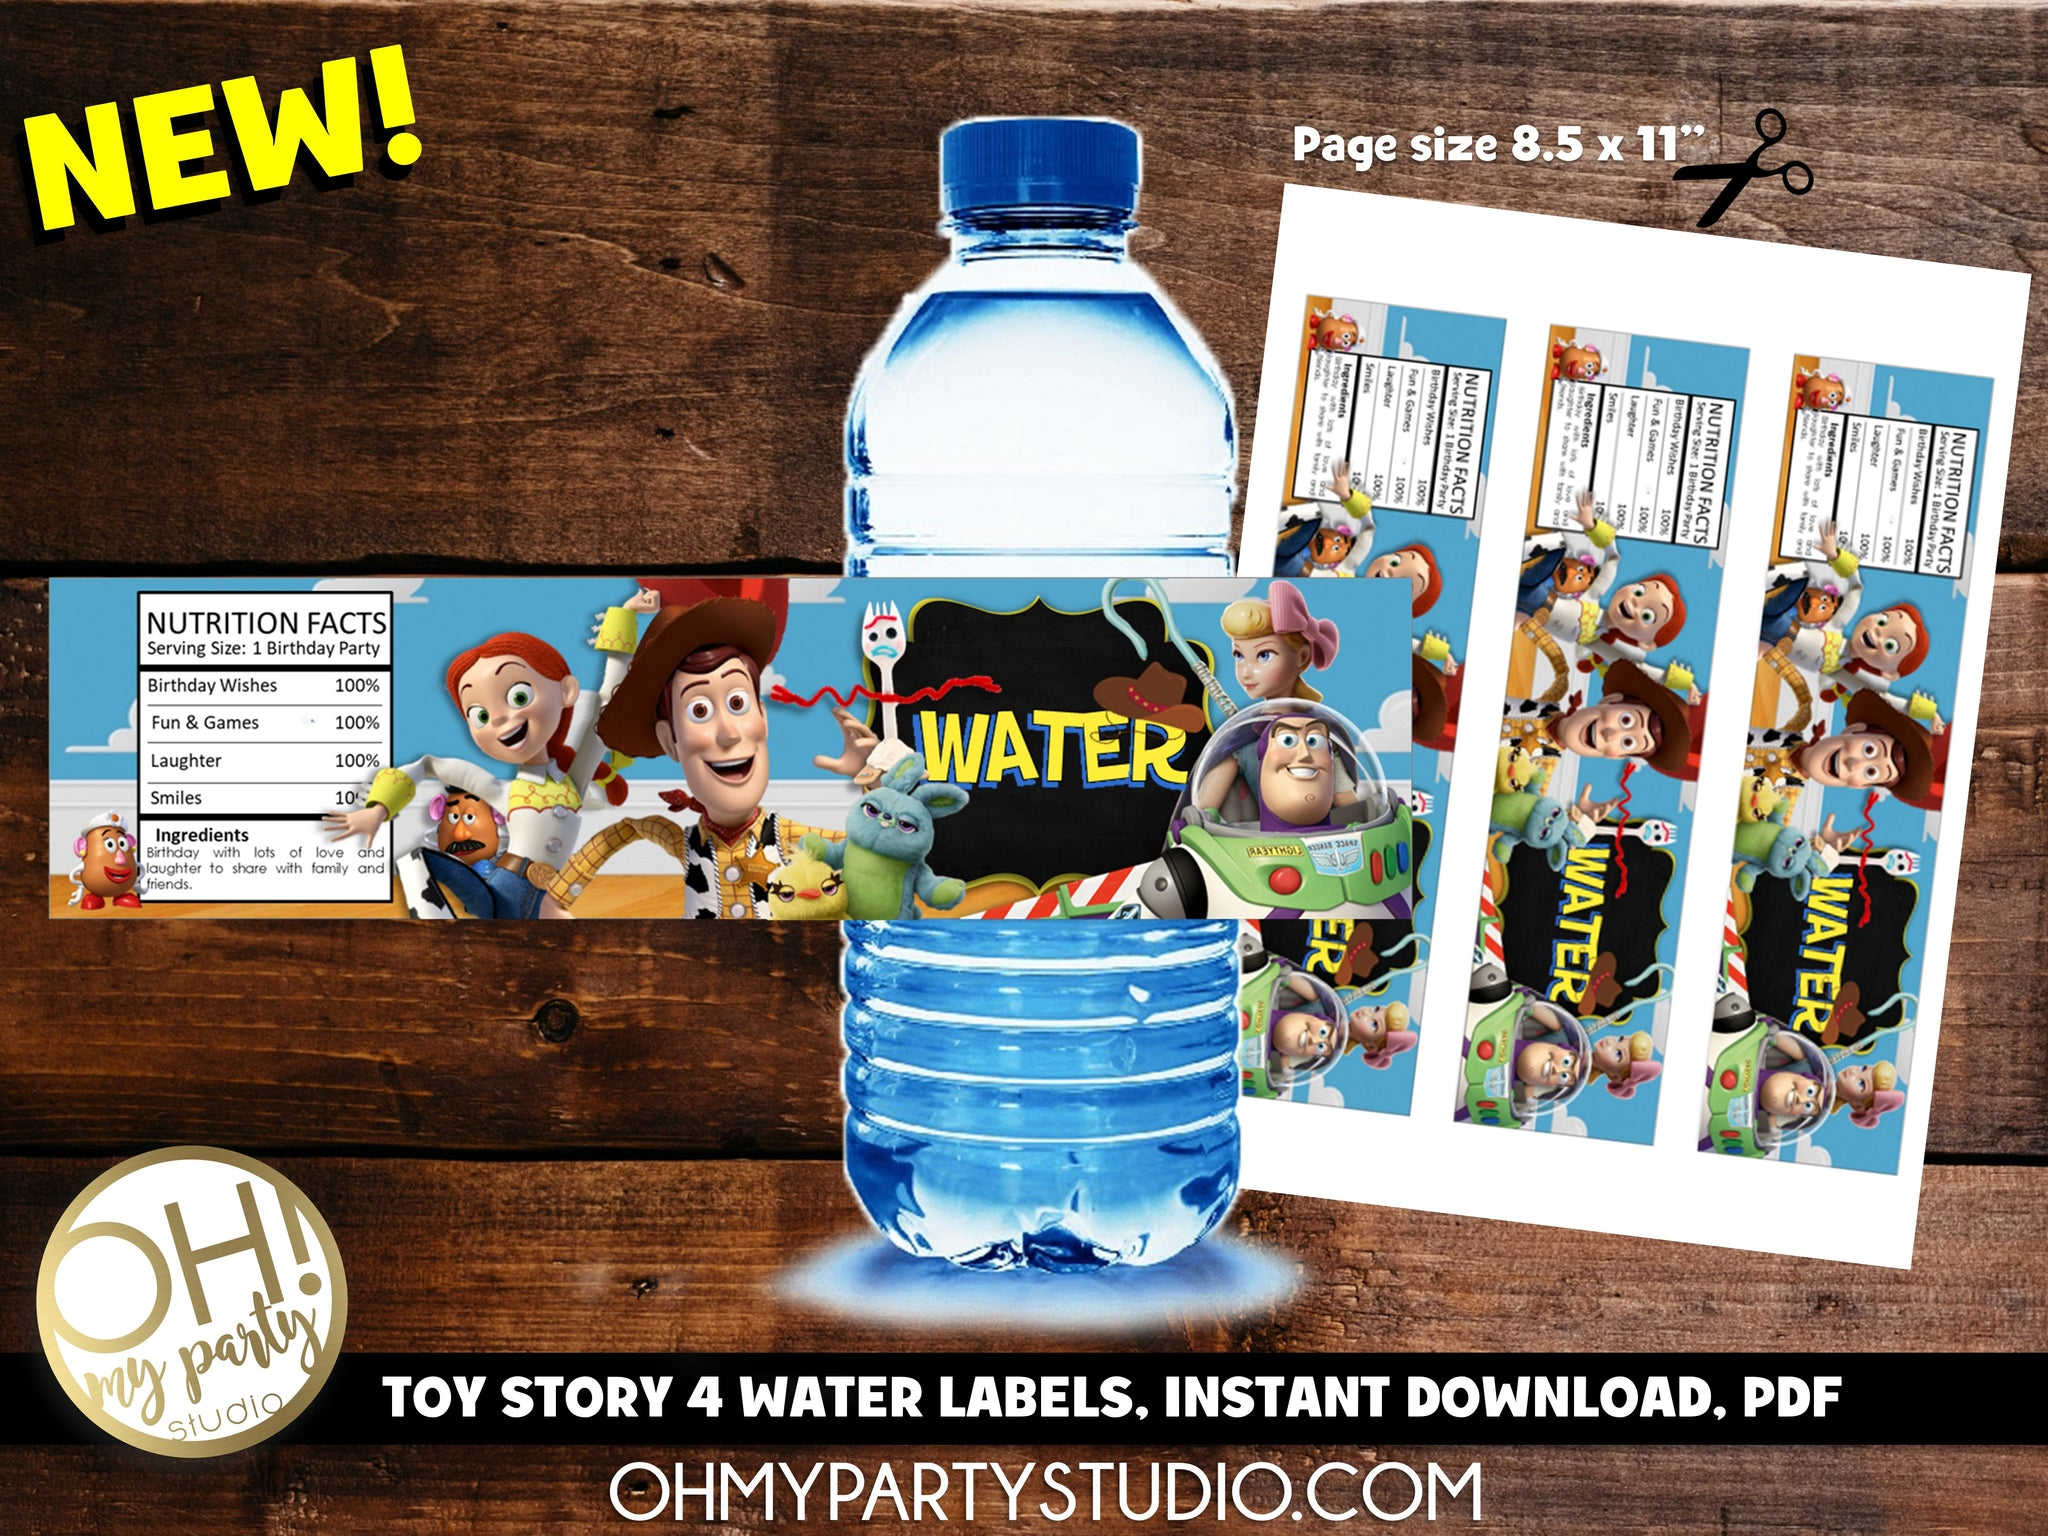 TOY STORY 4 WATER LABELS INSTANT DOWNLOAD